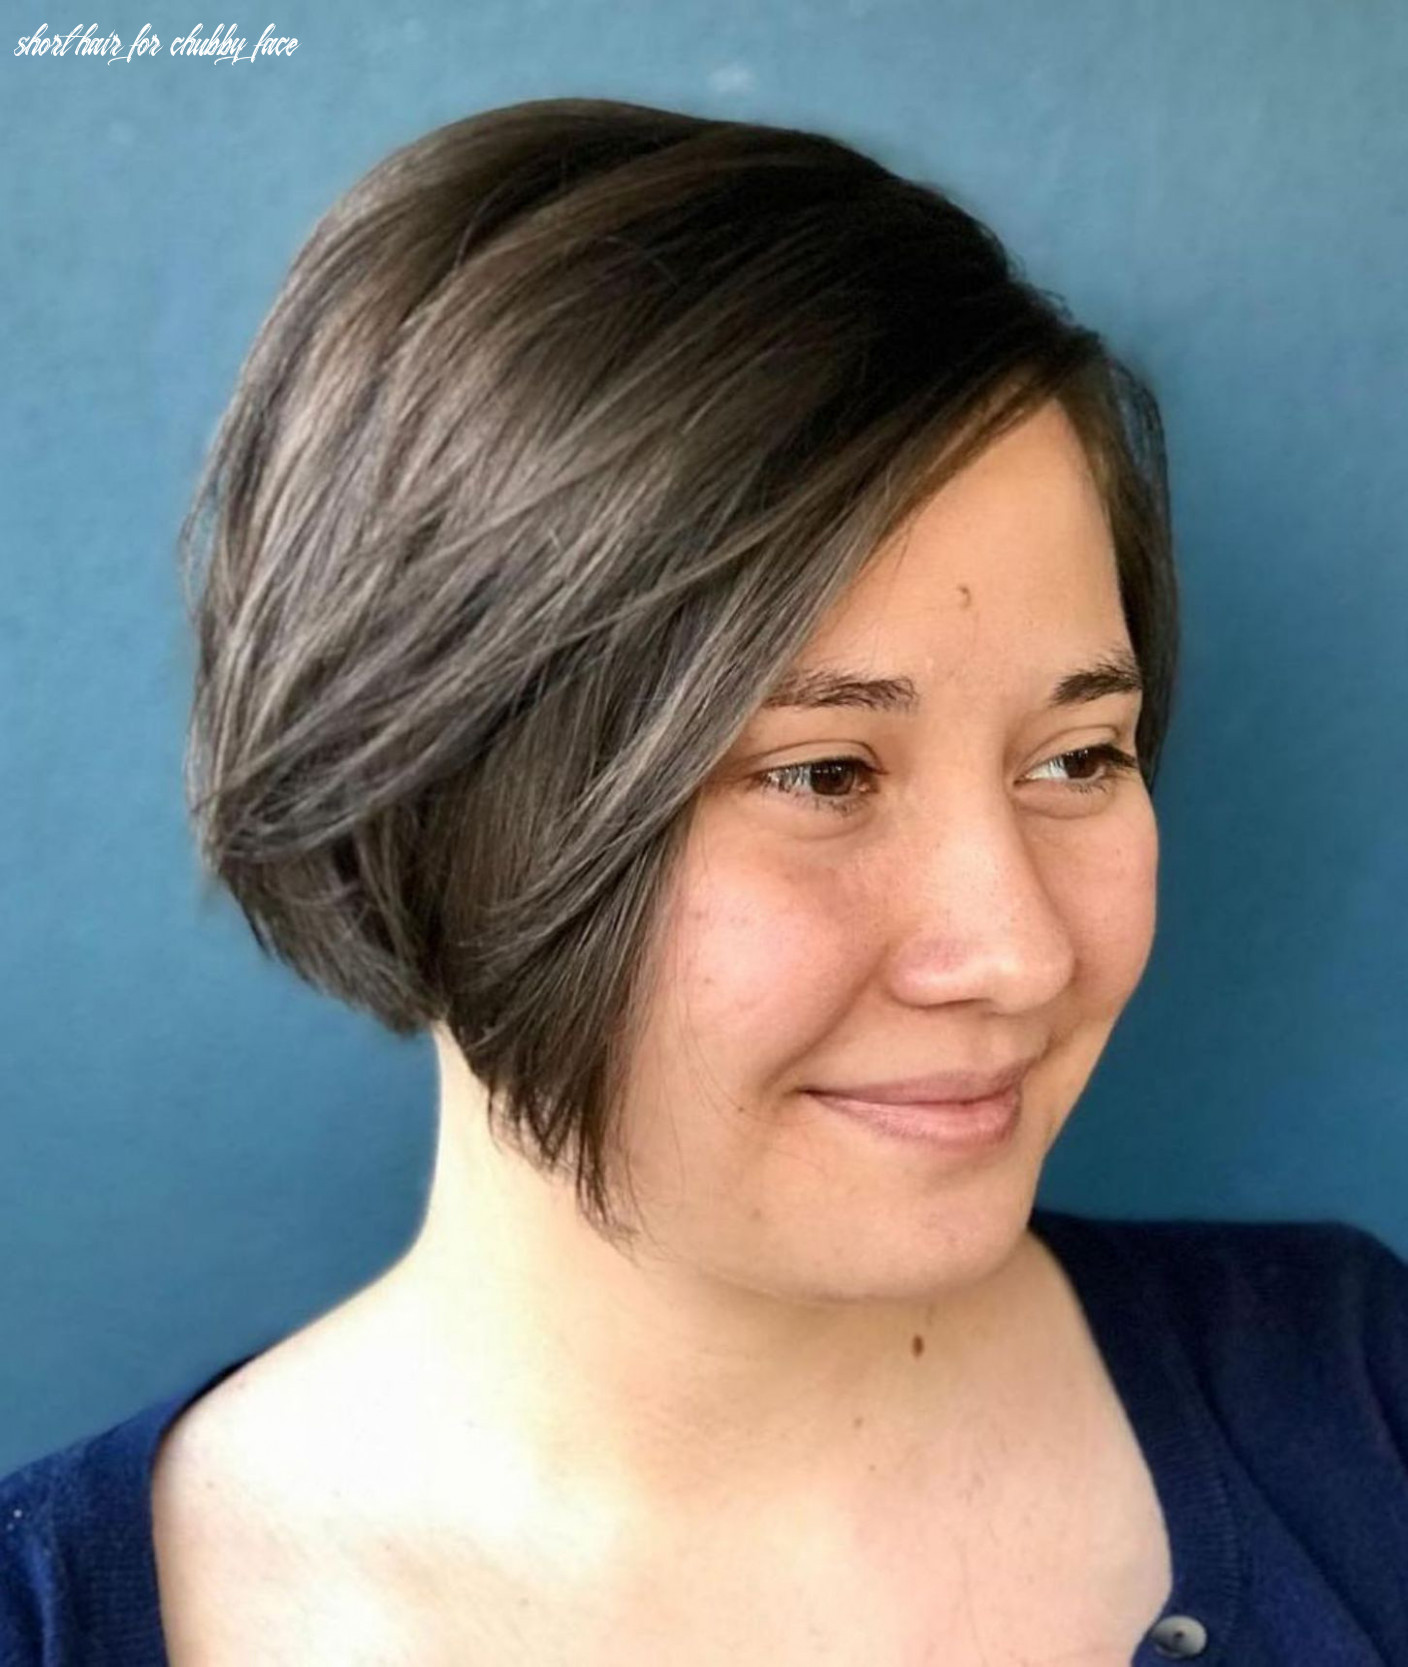 Short Hairstyles for Round Faces Awesome Fashion Short Haircuts ...